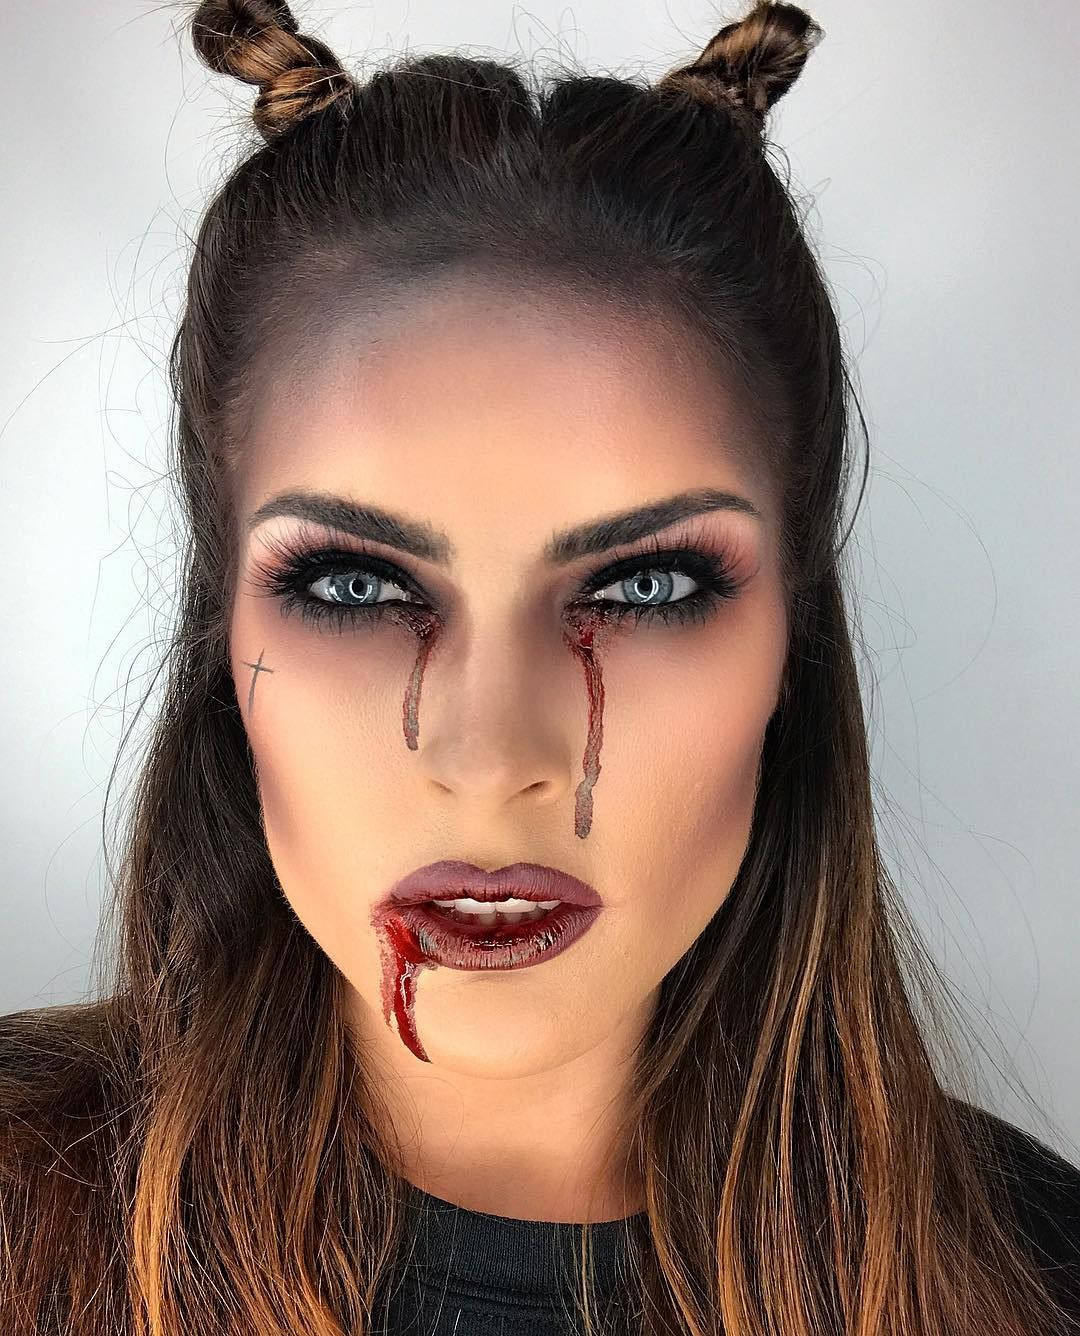 10 Devilish Halloween Makeup Looks Even Beginners Can Pull Off #easyupdo